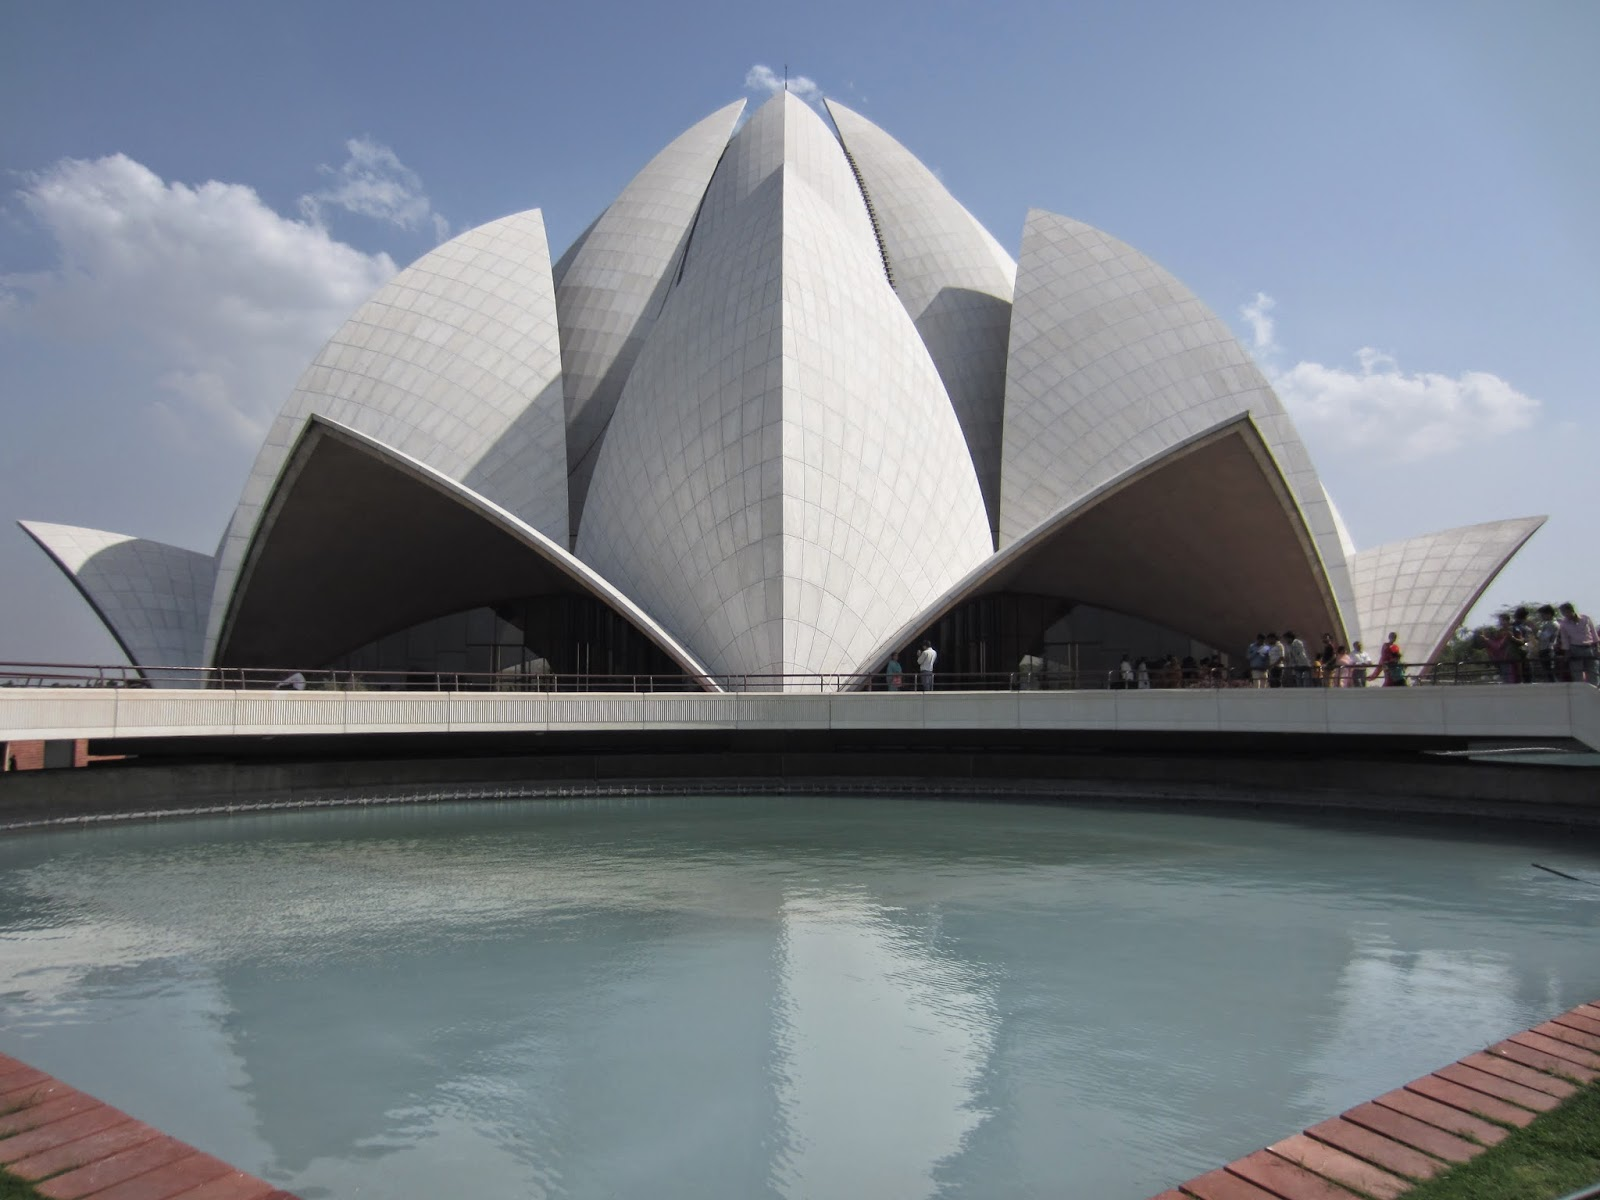 Lotus Temple Delhi, Delhi, Delhi Tourism, Baha'i temple Delhi, Places to see in Delhi